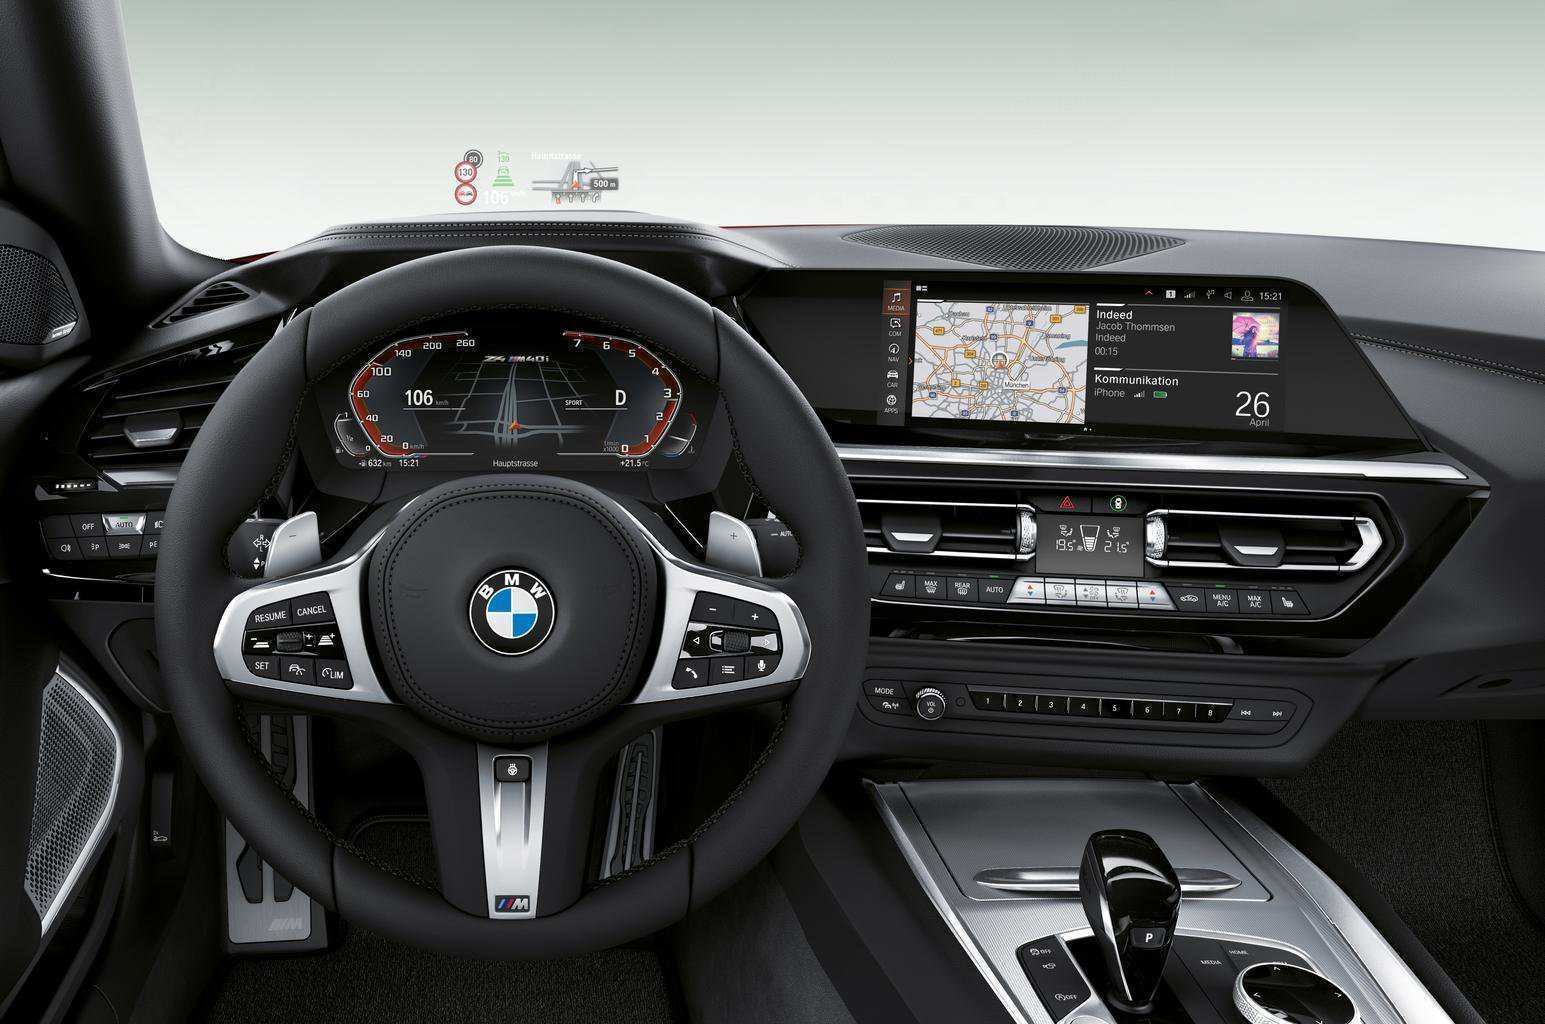 20 Concept of The 2019 Bmw Heads Up Display Interior Release for The 2019 Bmw Heads Up Display Interior